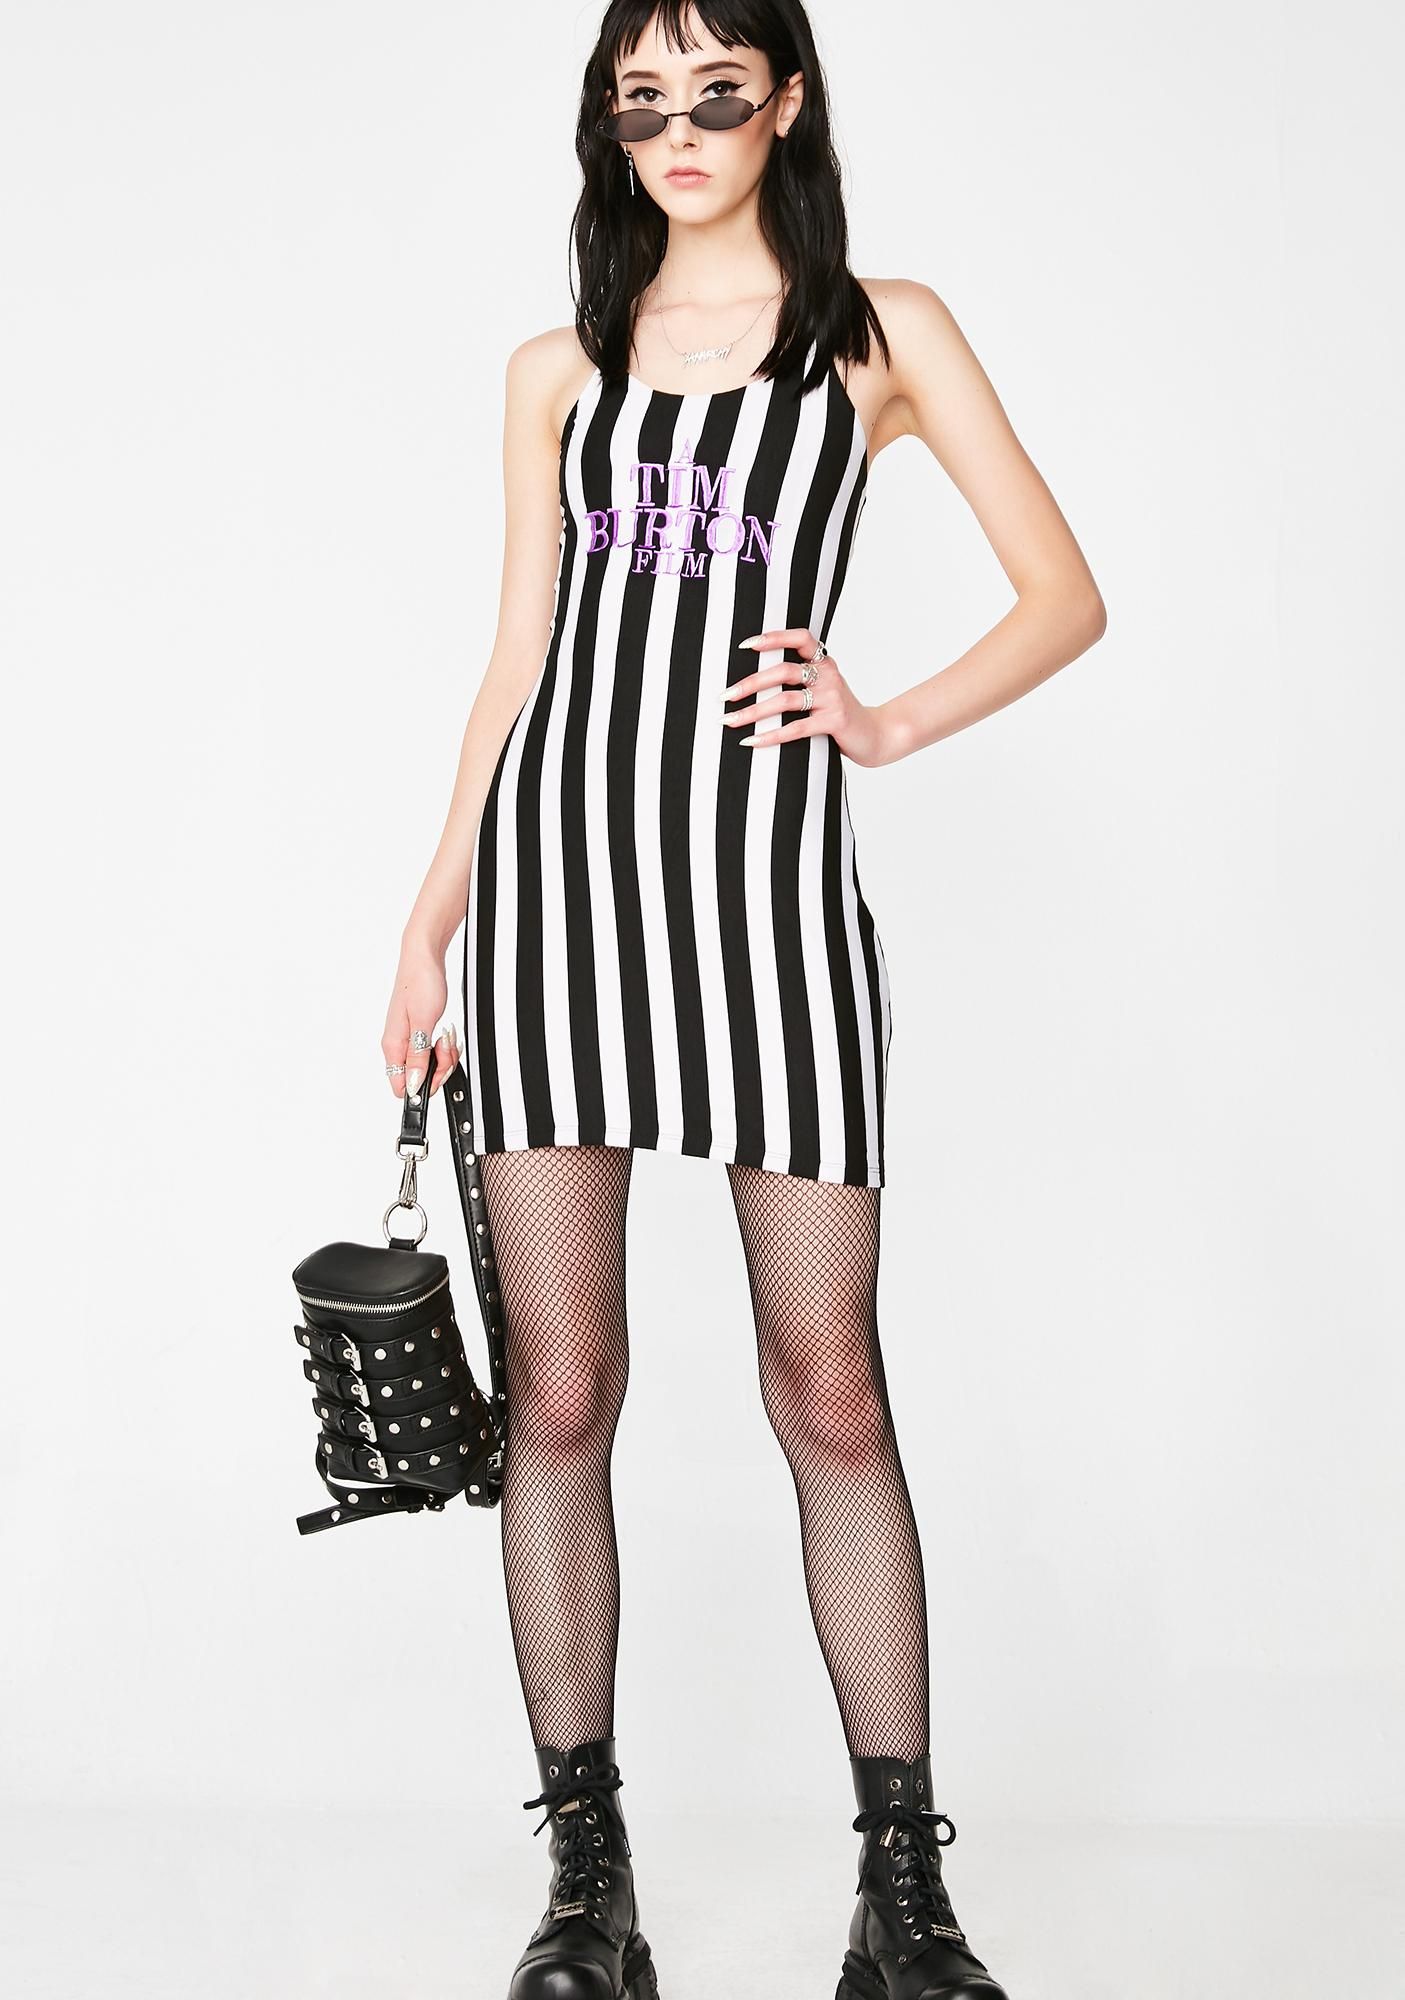 O Mighty Tim Burton Skinny Dress